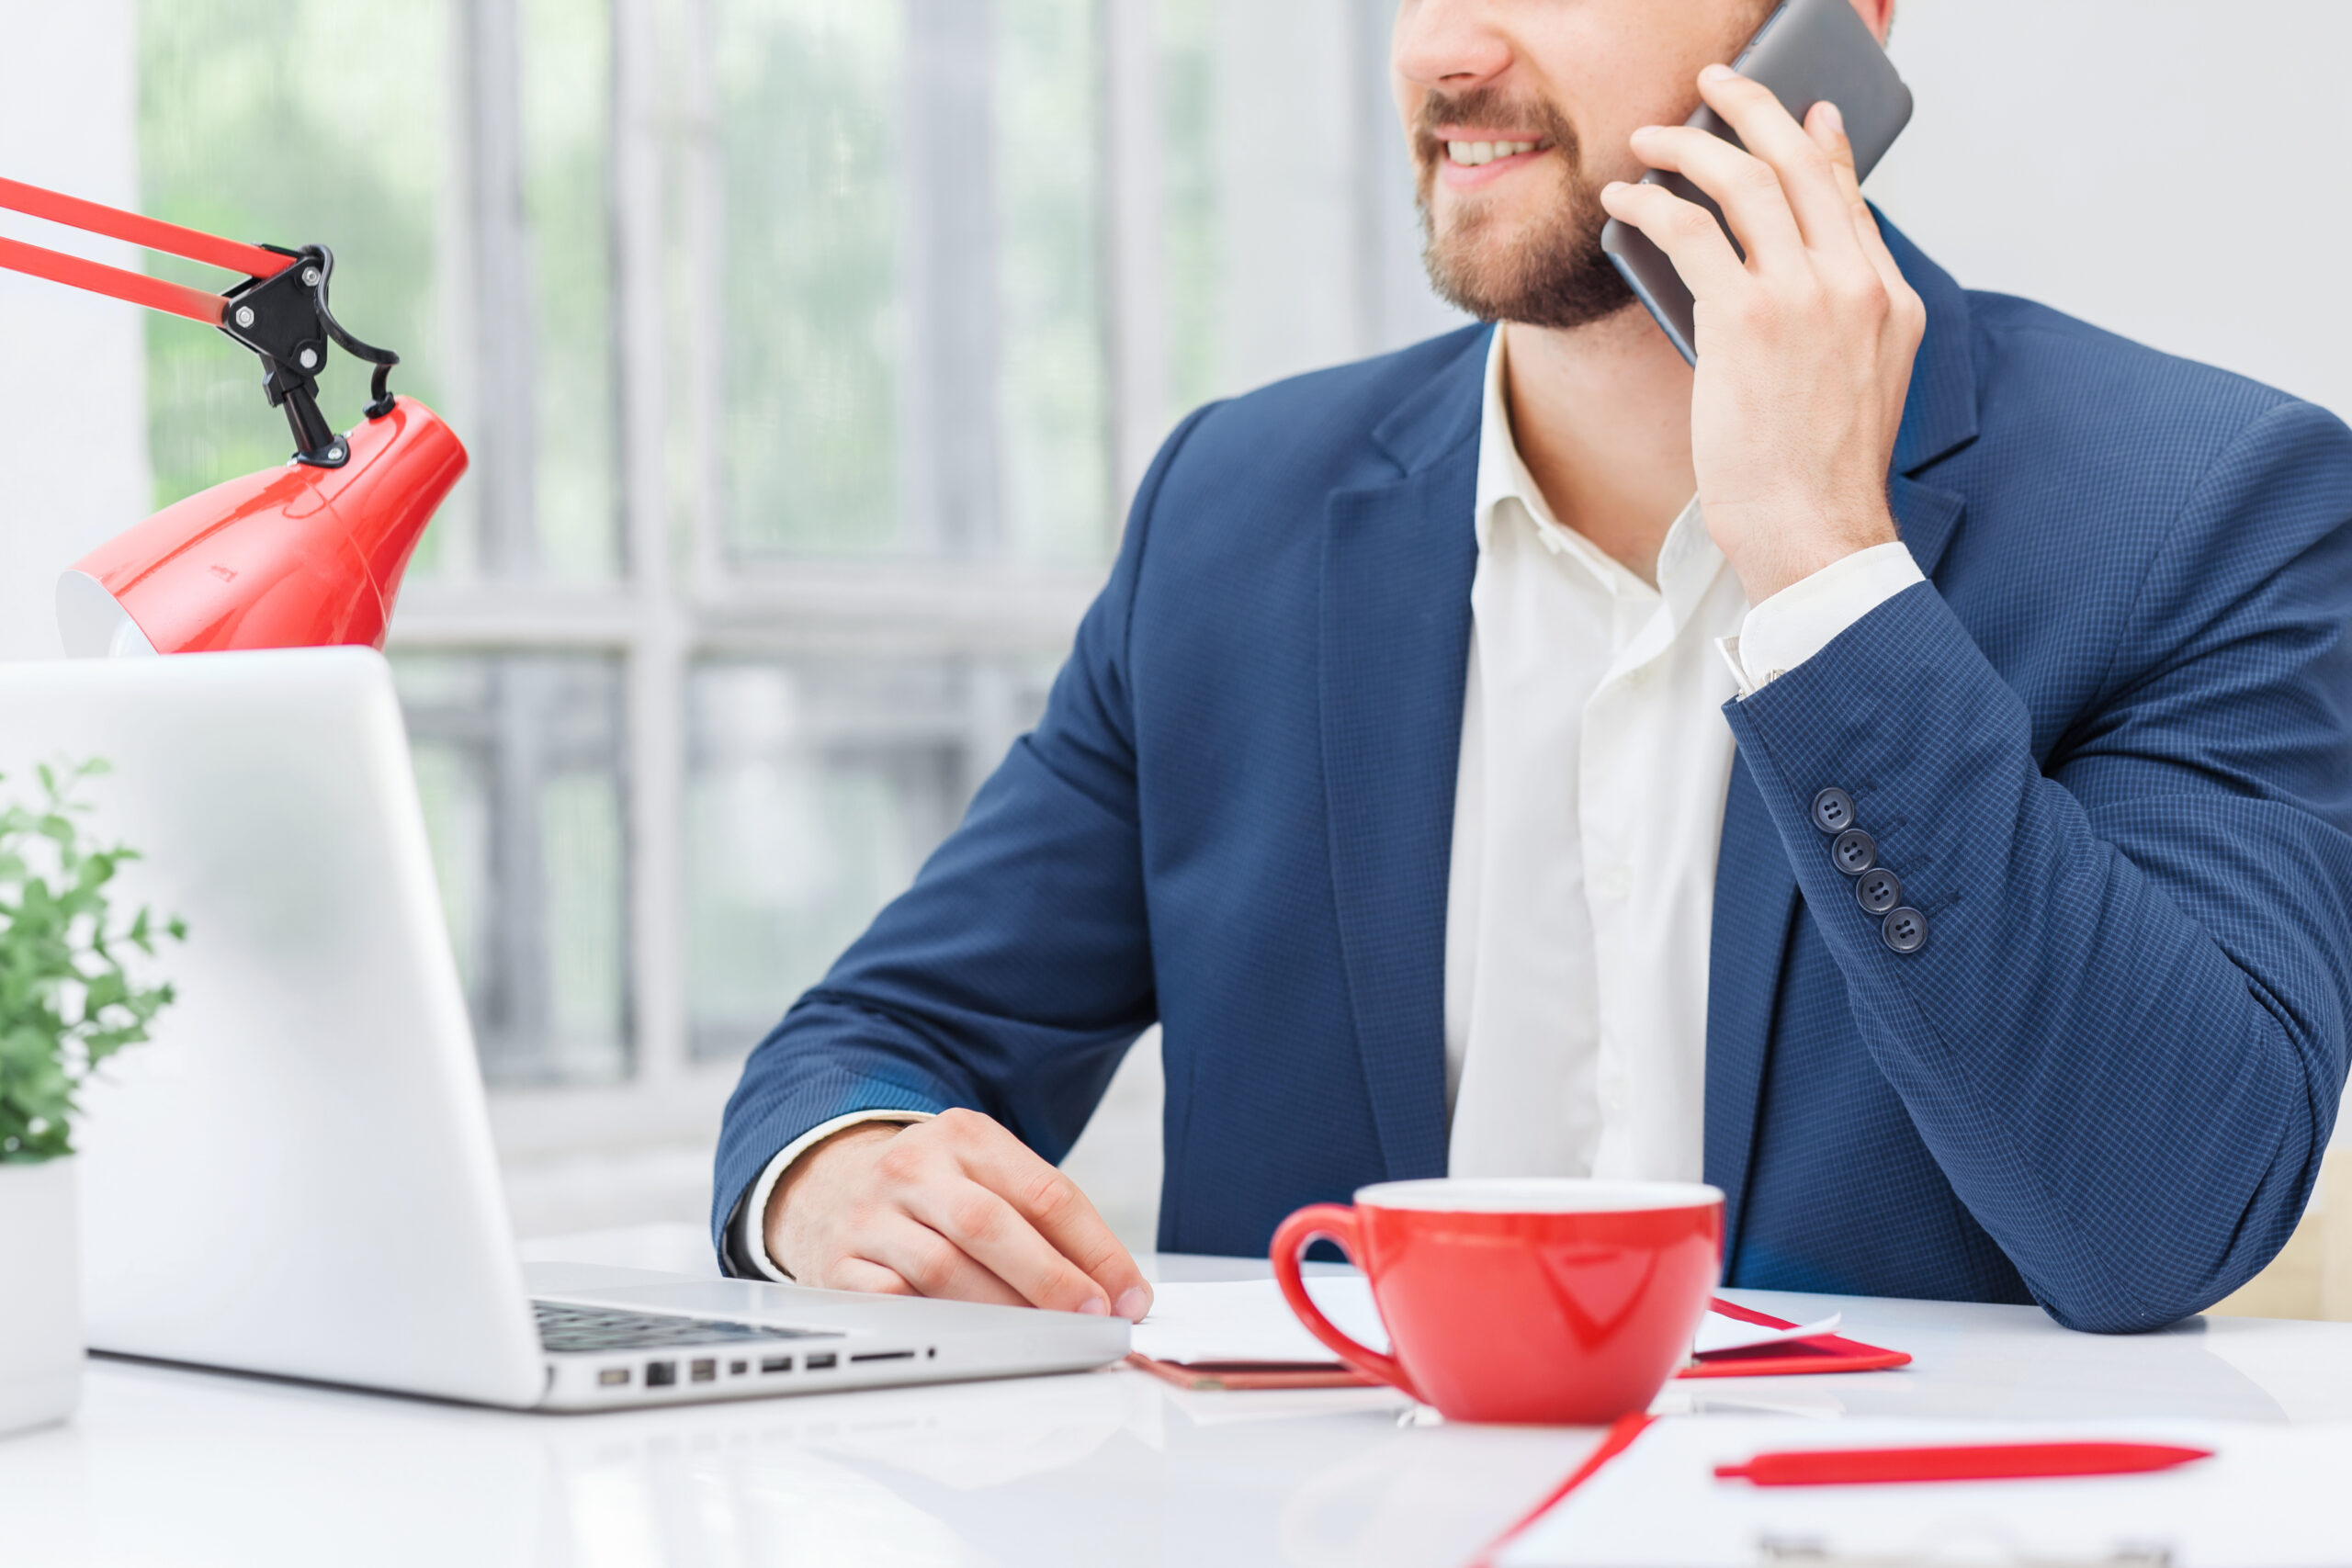 5 Online Selling Tips to boost your business remotely